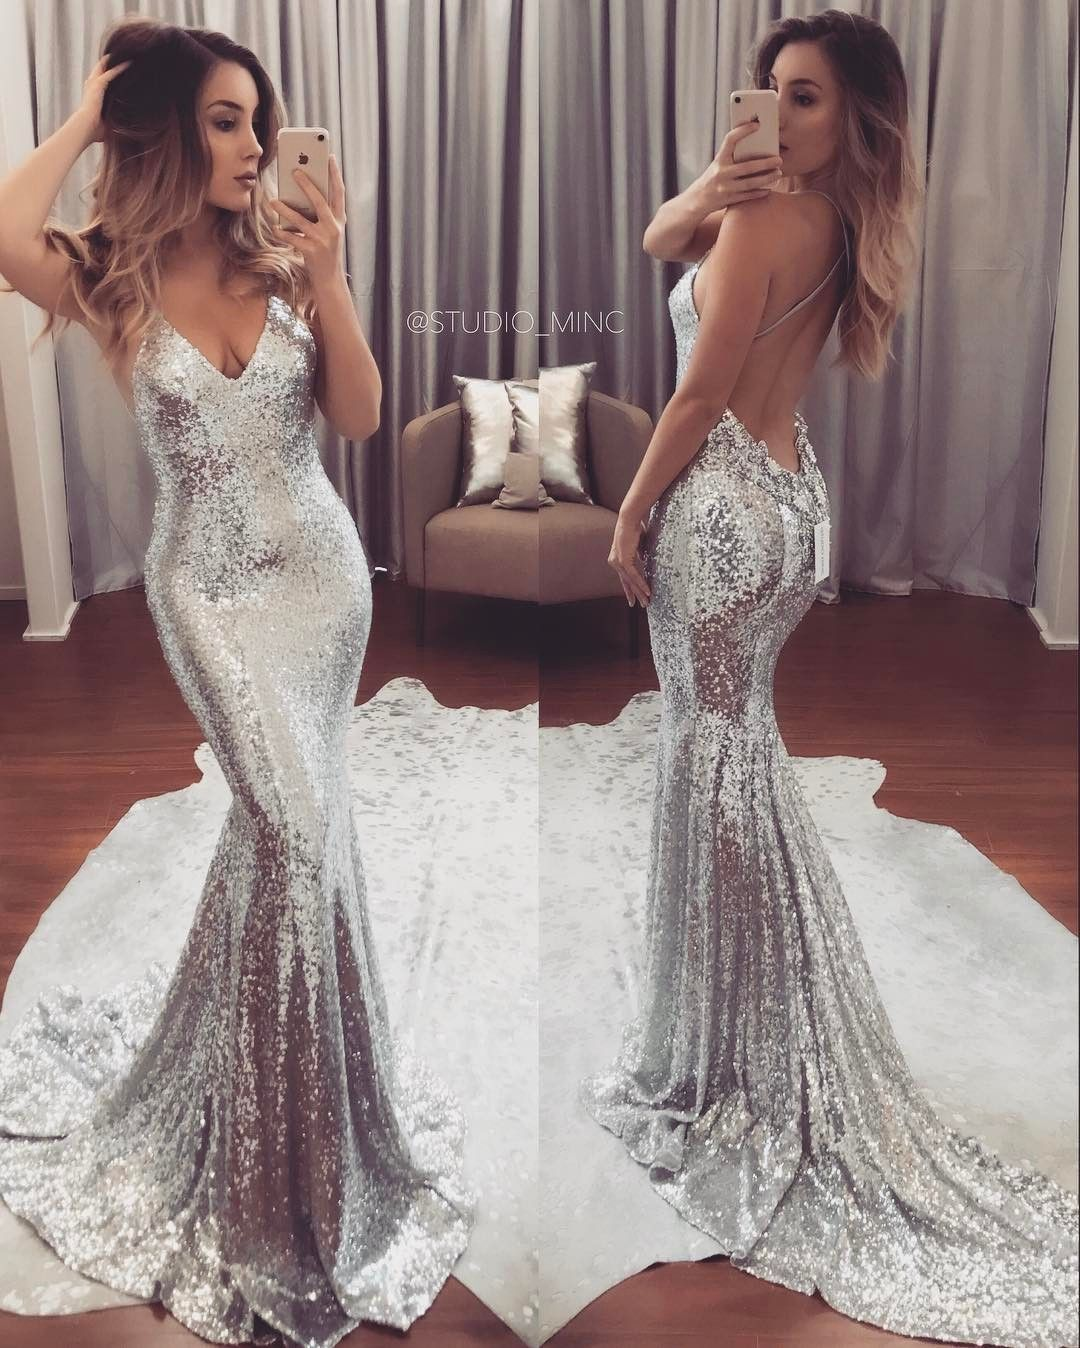 Silver angel backless formal prom dress by studio minc couture